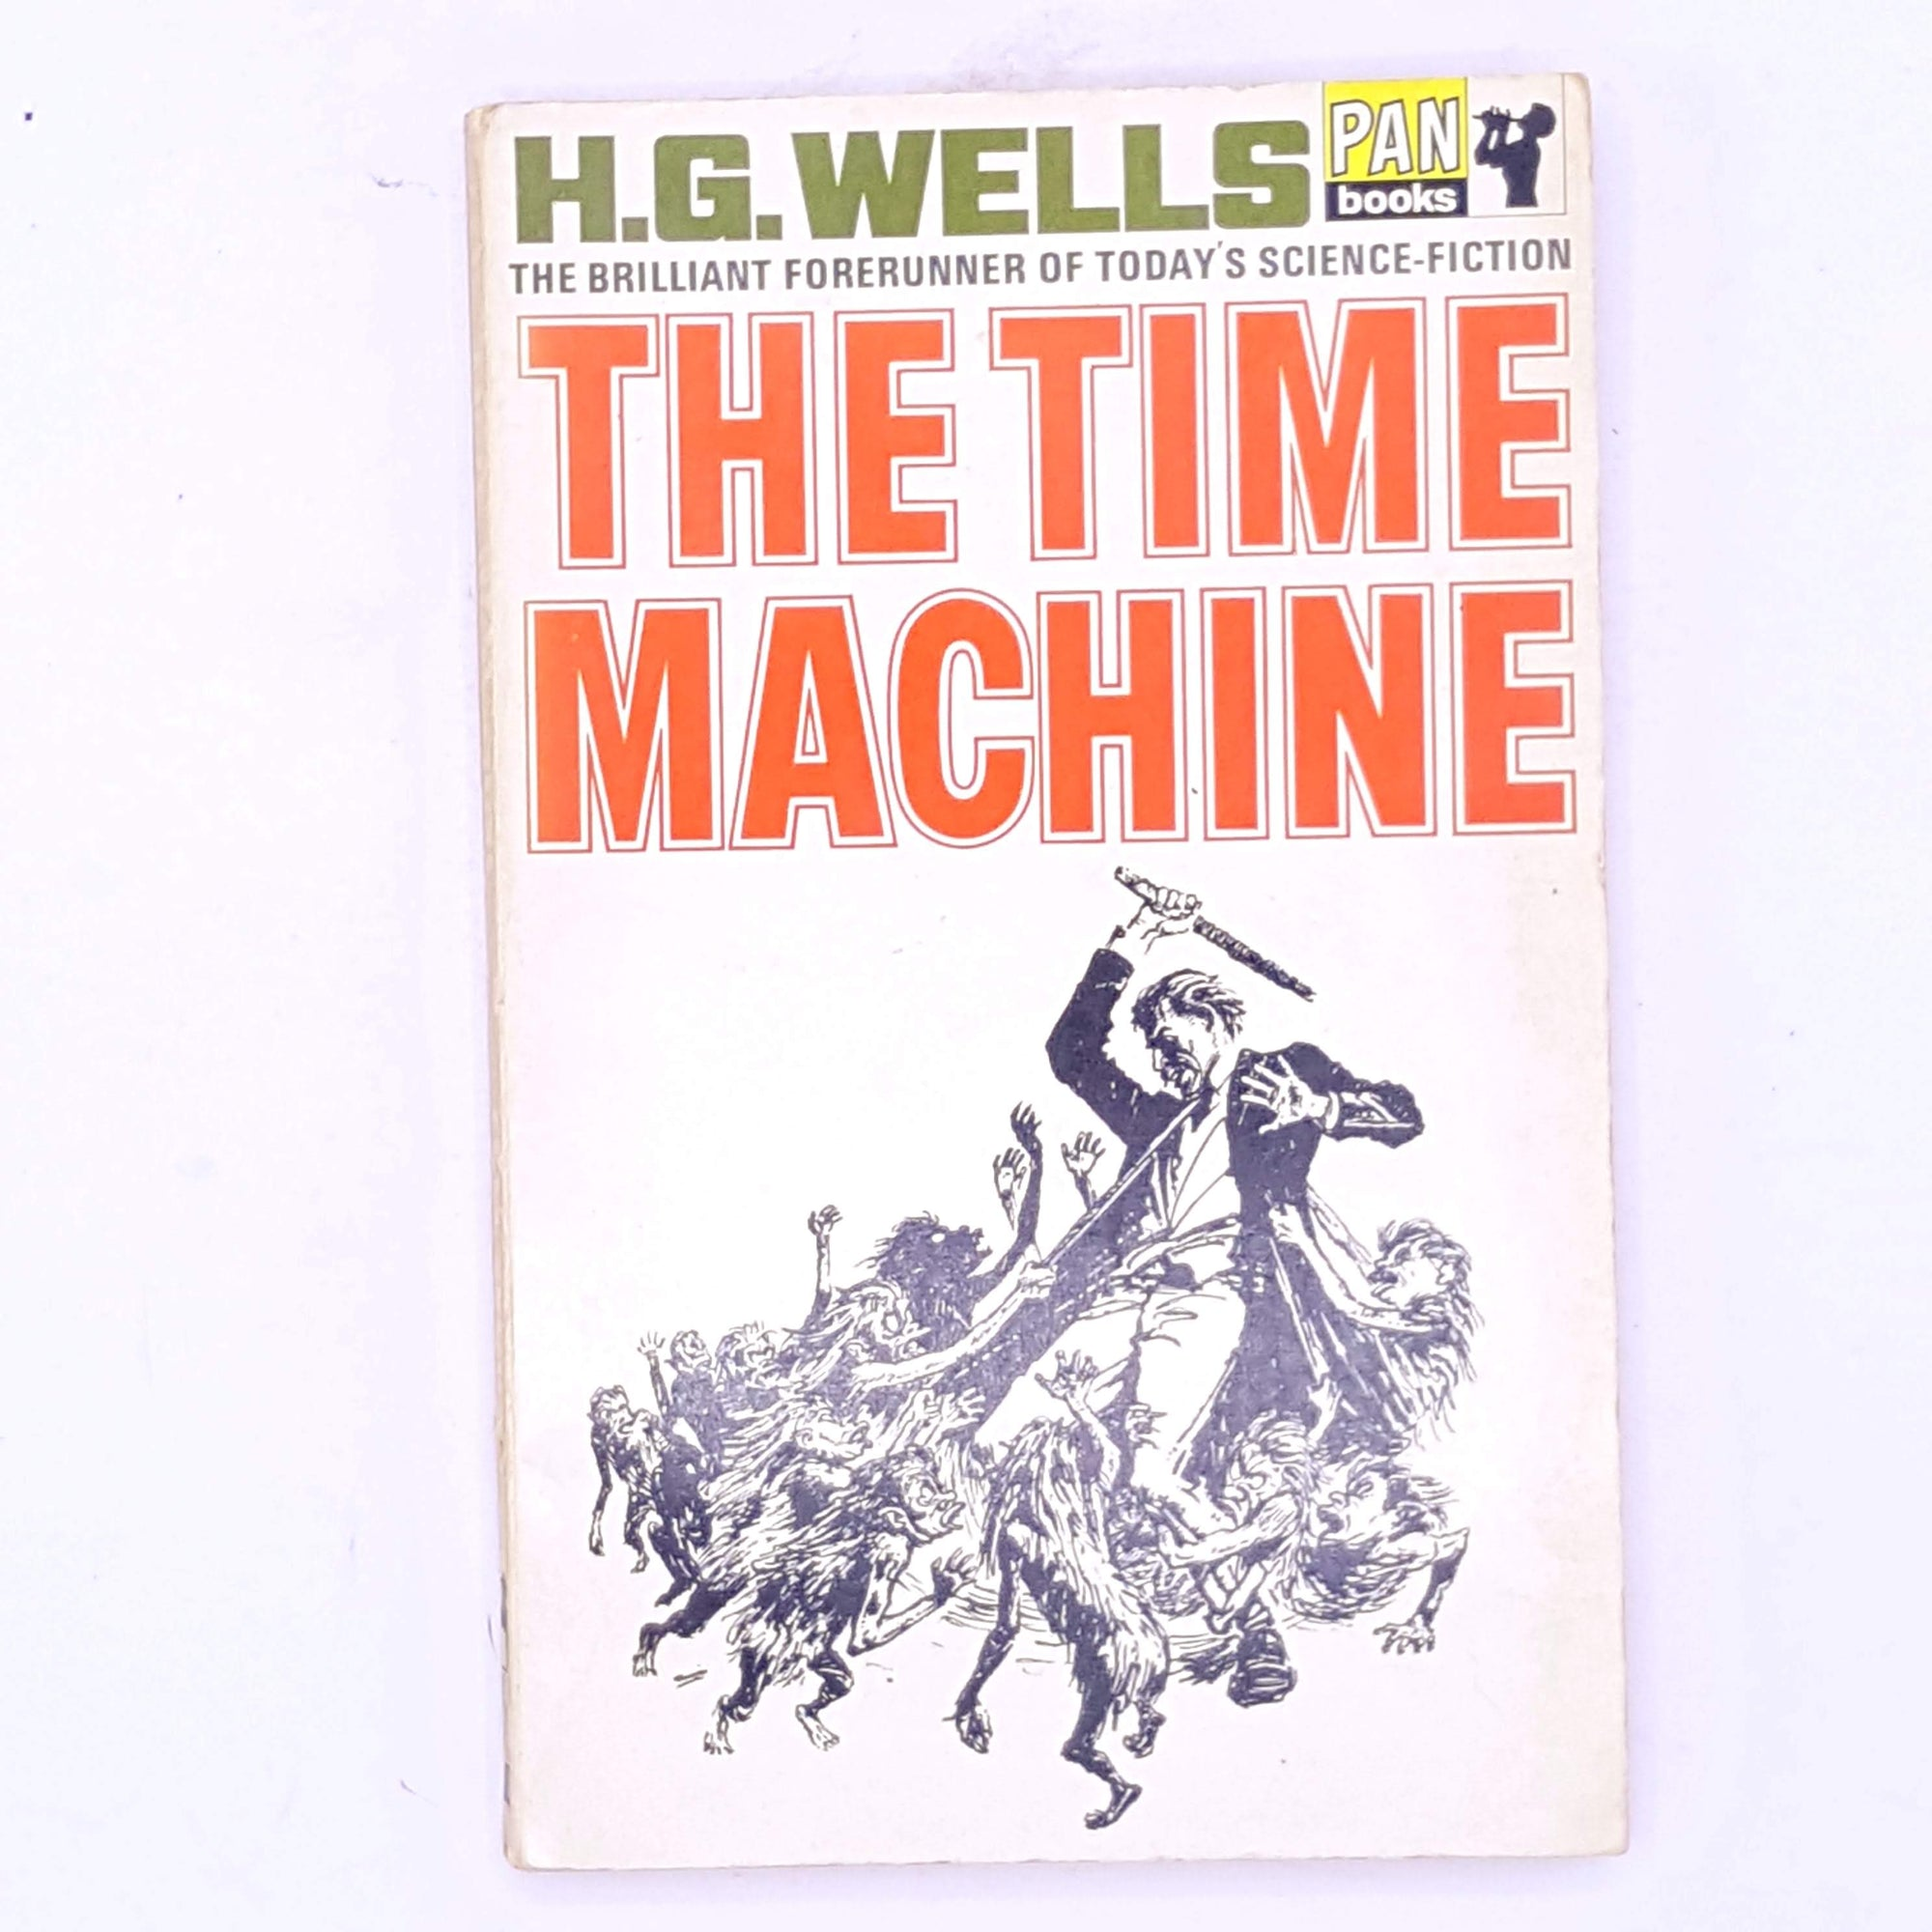 H.G.Wells, The Time Machine, 1968